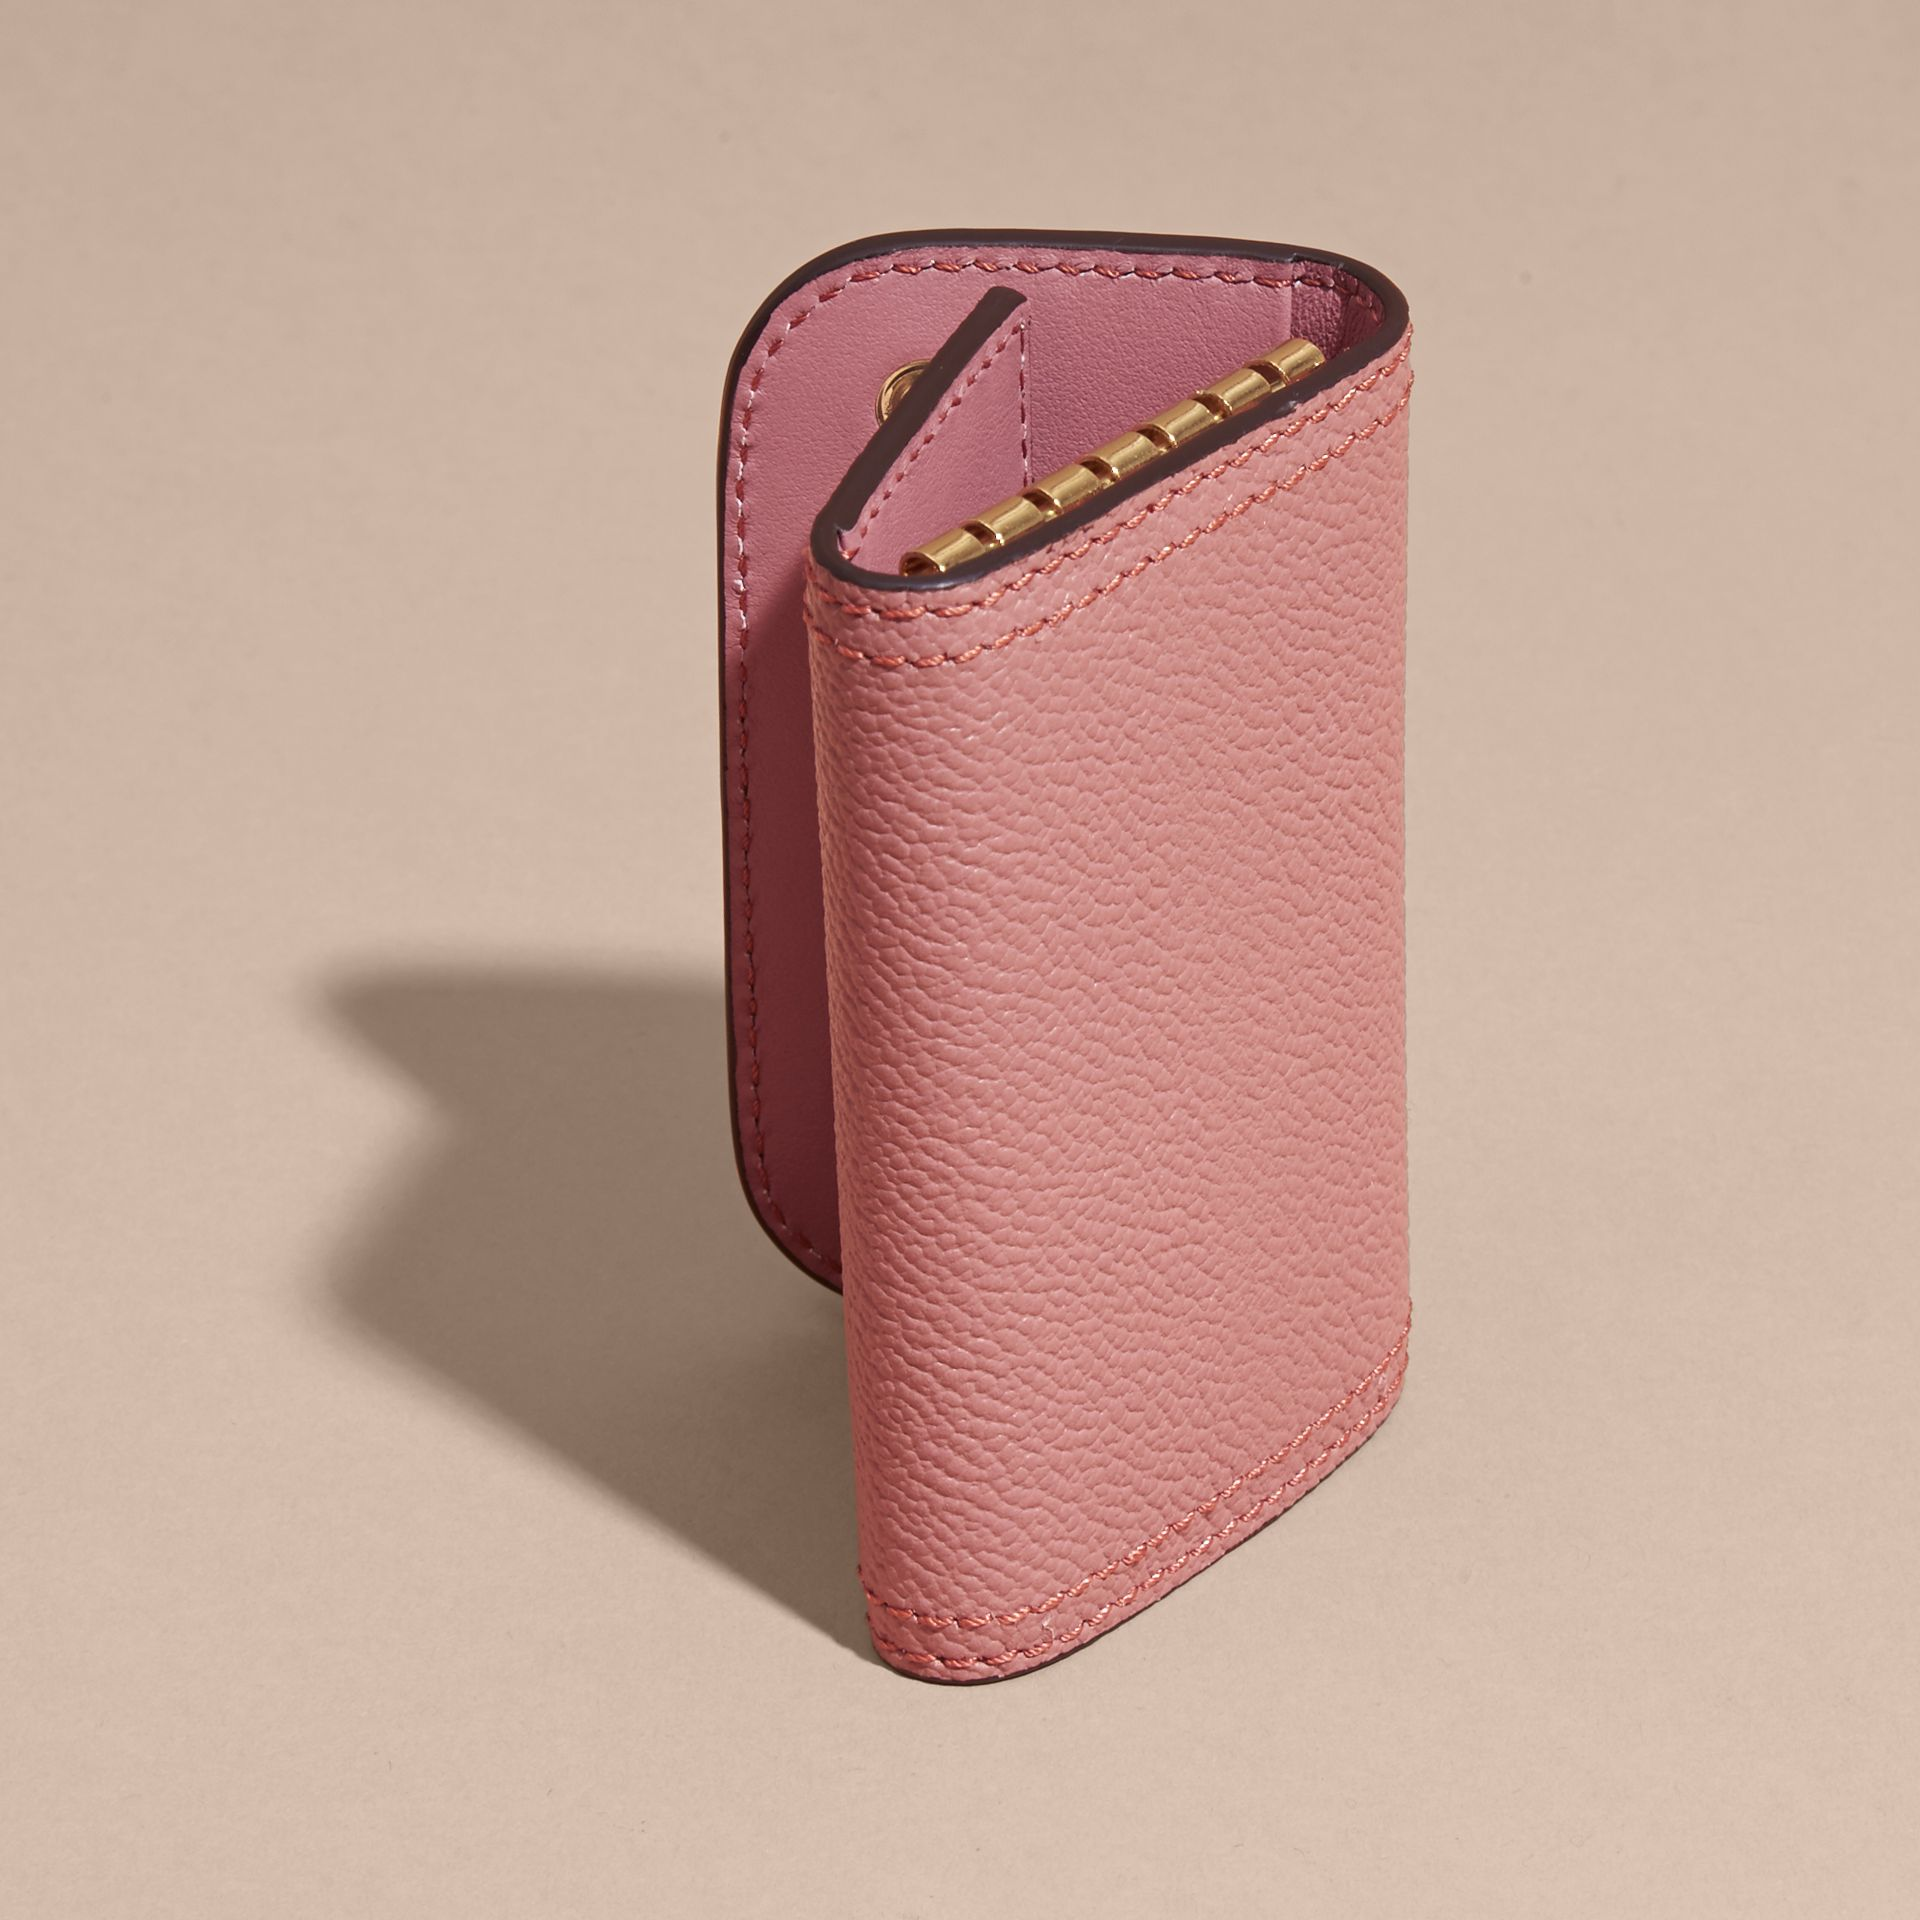 Grainy Leather Key Holder in Dusty Pink - Women | Burberry United States - gallery image 3